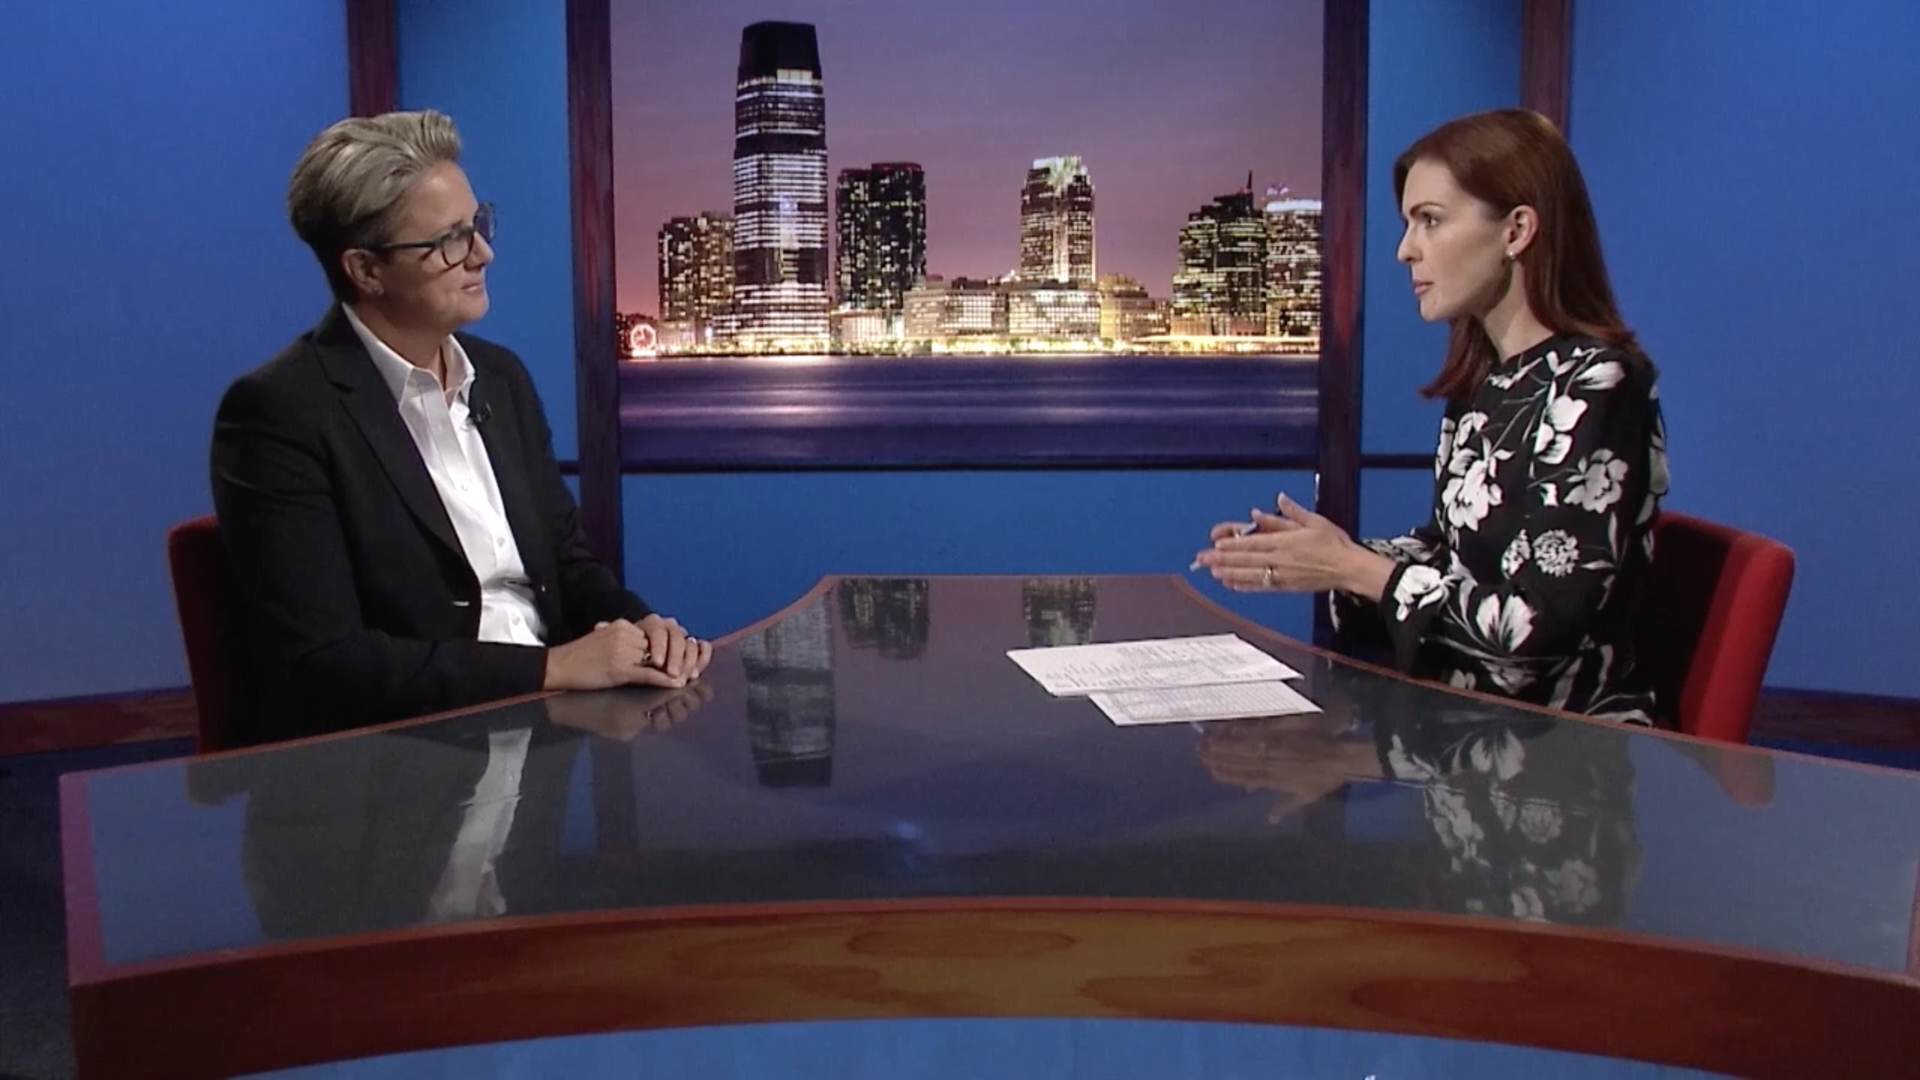 CEO Laurie Goganzer Discusses YMCA of Greater Monmouth County Merger on Comcast NewsmakersCEO Laurie Goganzer Discusses YMCA of Greater Monmouth County Merger on Comcast Newsmakers